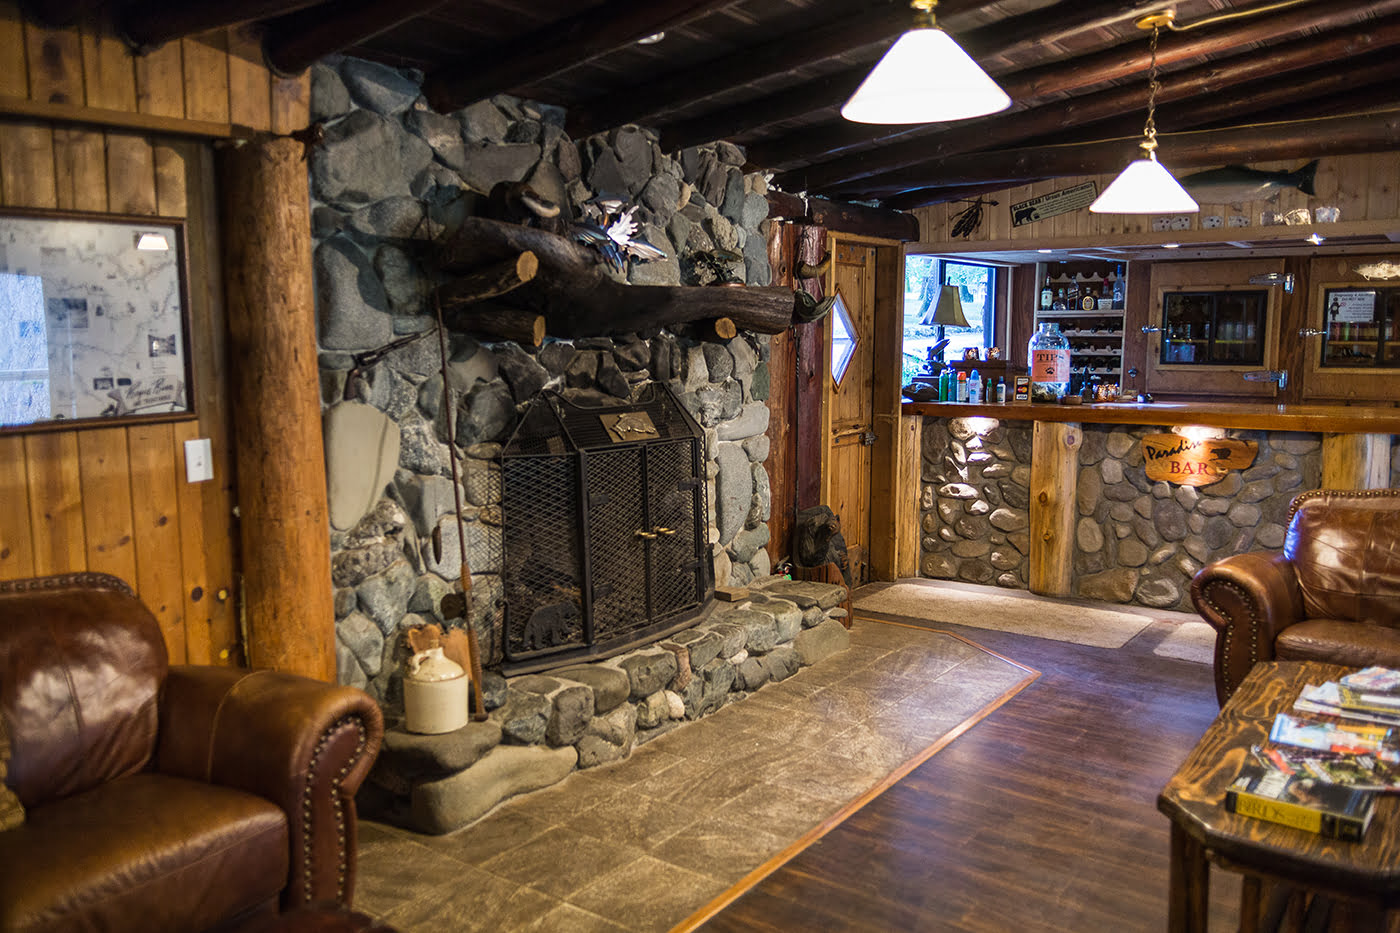 Fire place and bar inside Paradise Lodge on the Wild & Scenic Rogue River